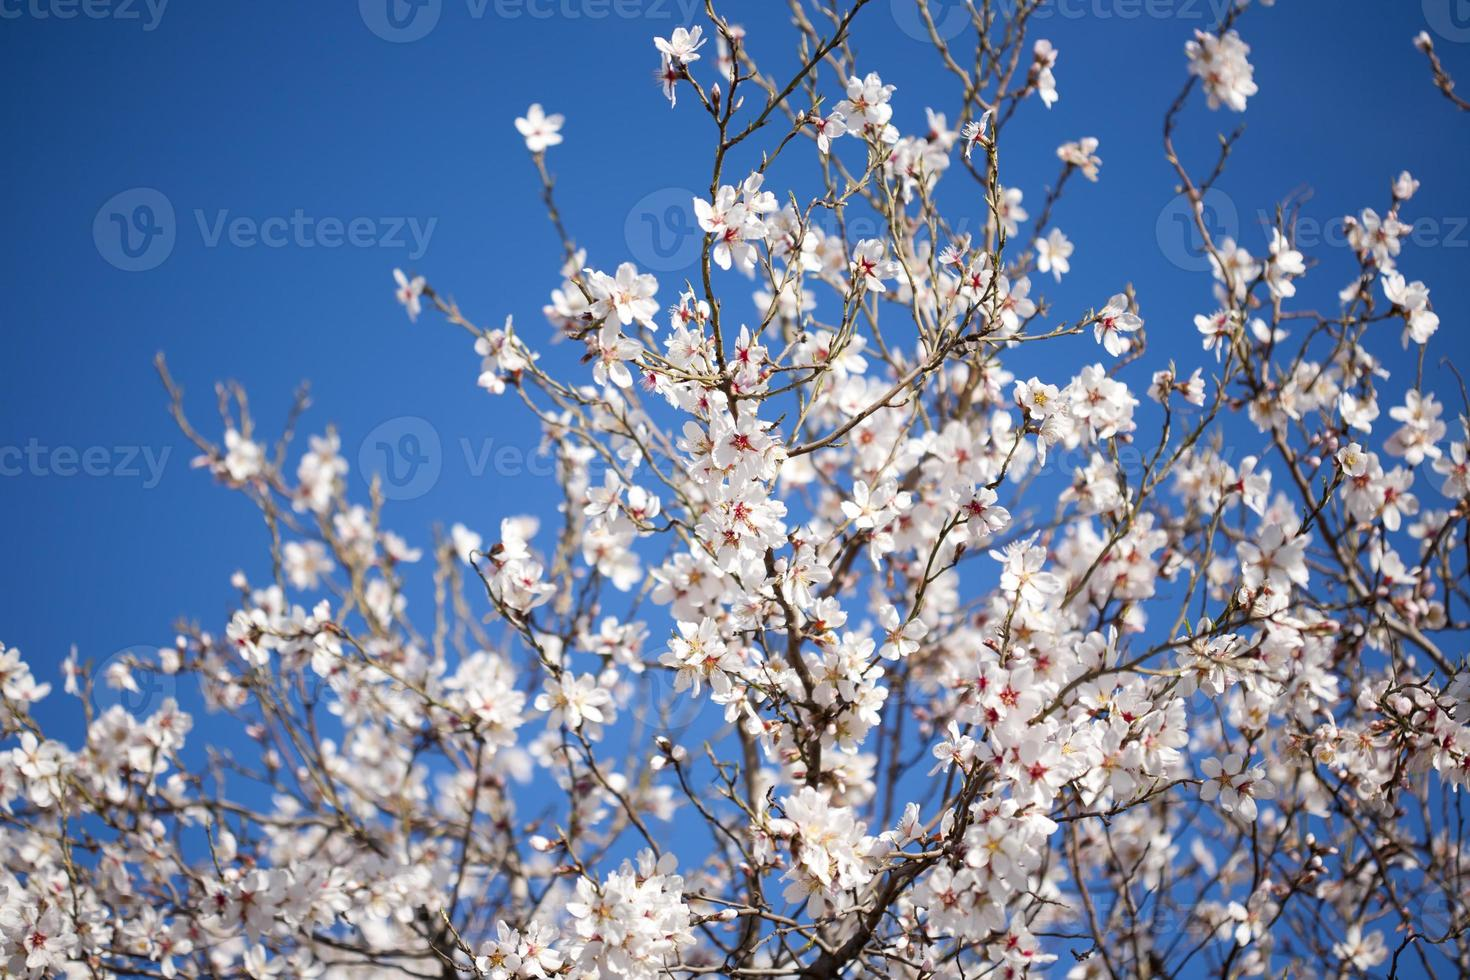 Cherry blossoms in tree against blue sky photo